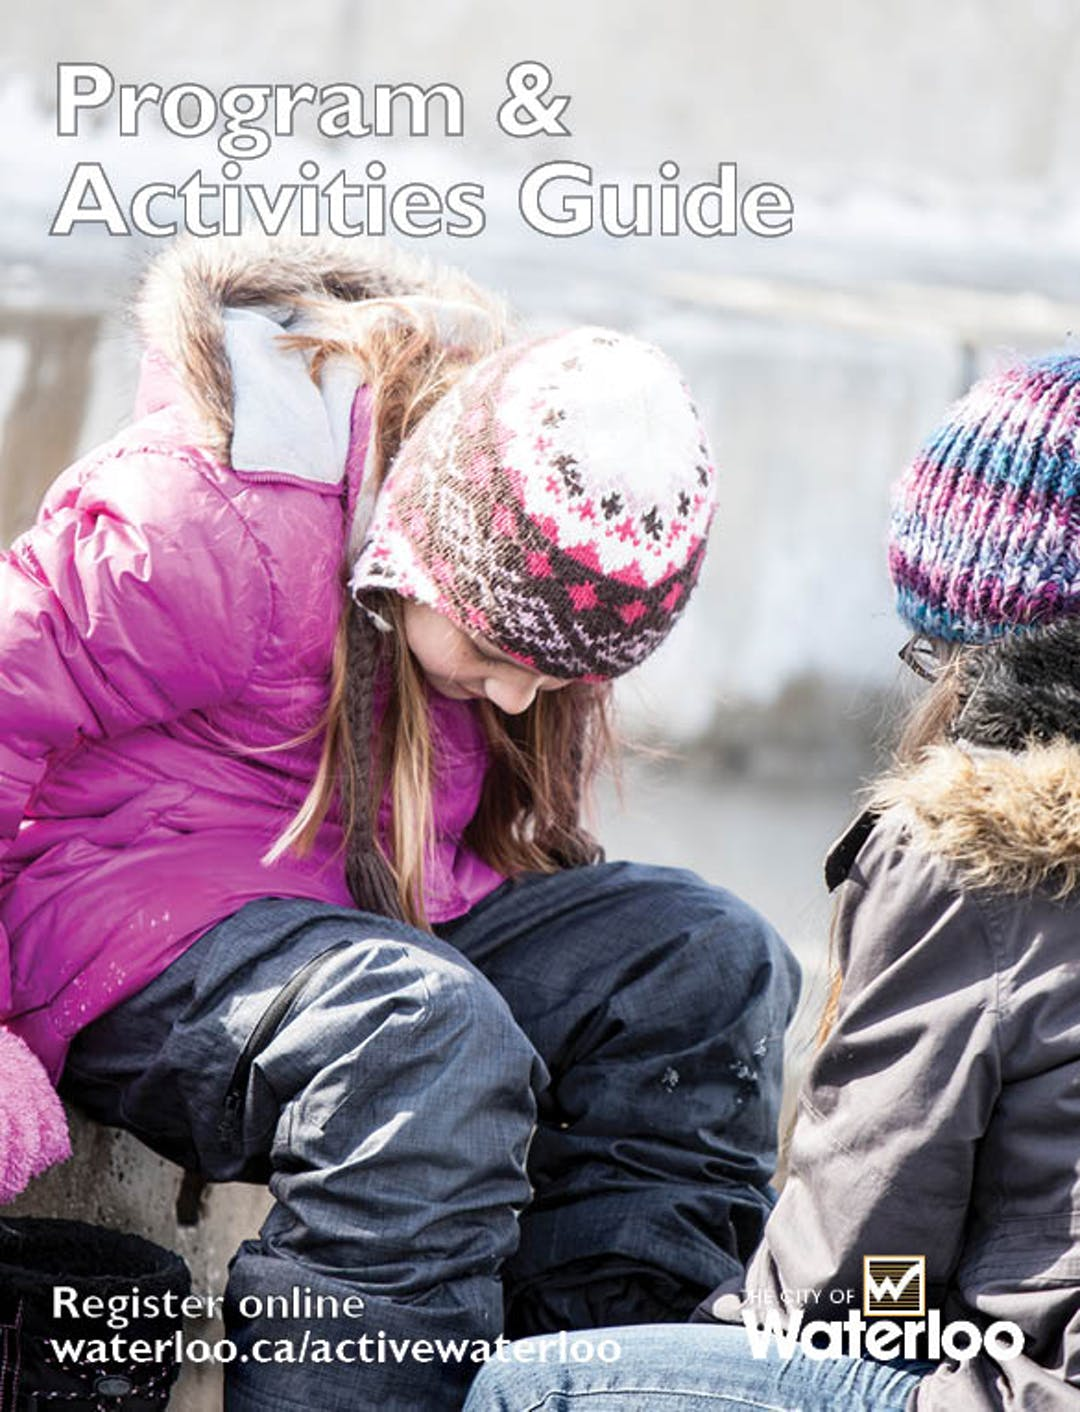 Program & Activities Guide